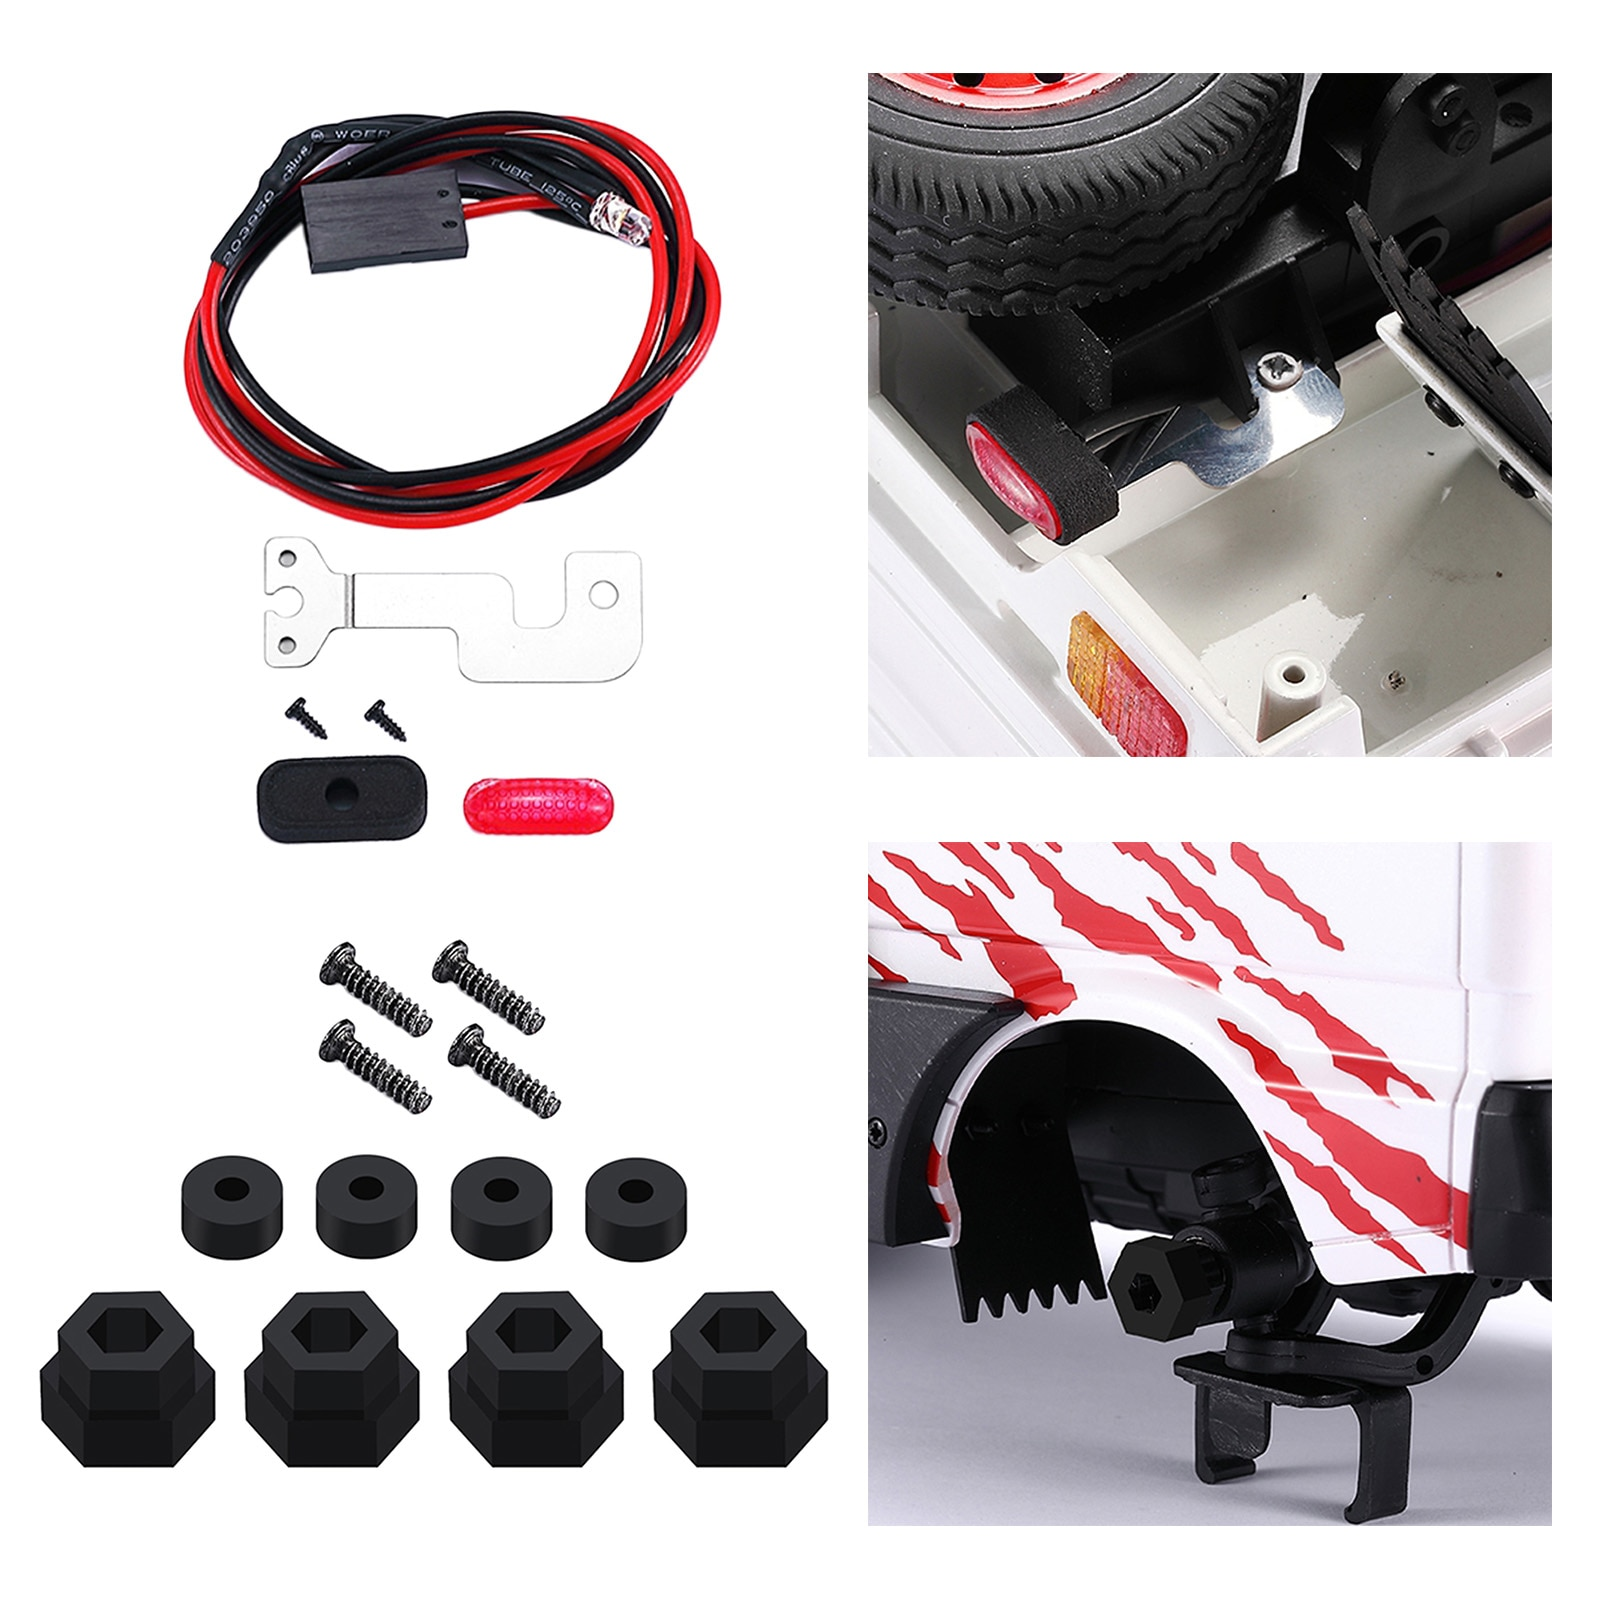 Premium 1:10 Scale RC Car Upgrade Parts for WPL D12  Car Truck Hobby Accessories 13mm Kids Adults Gi